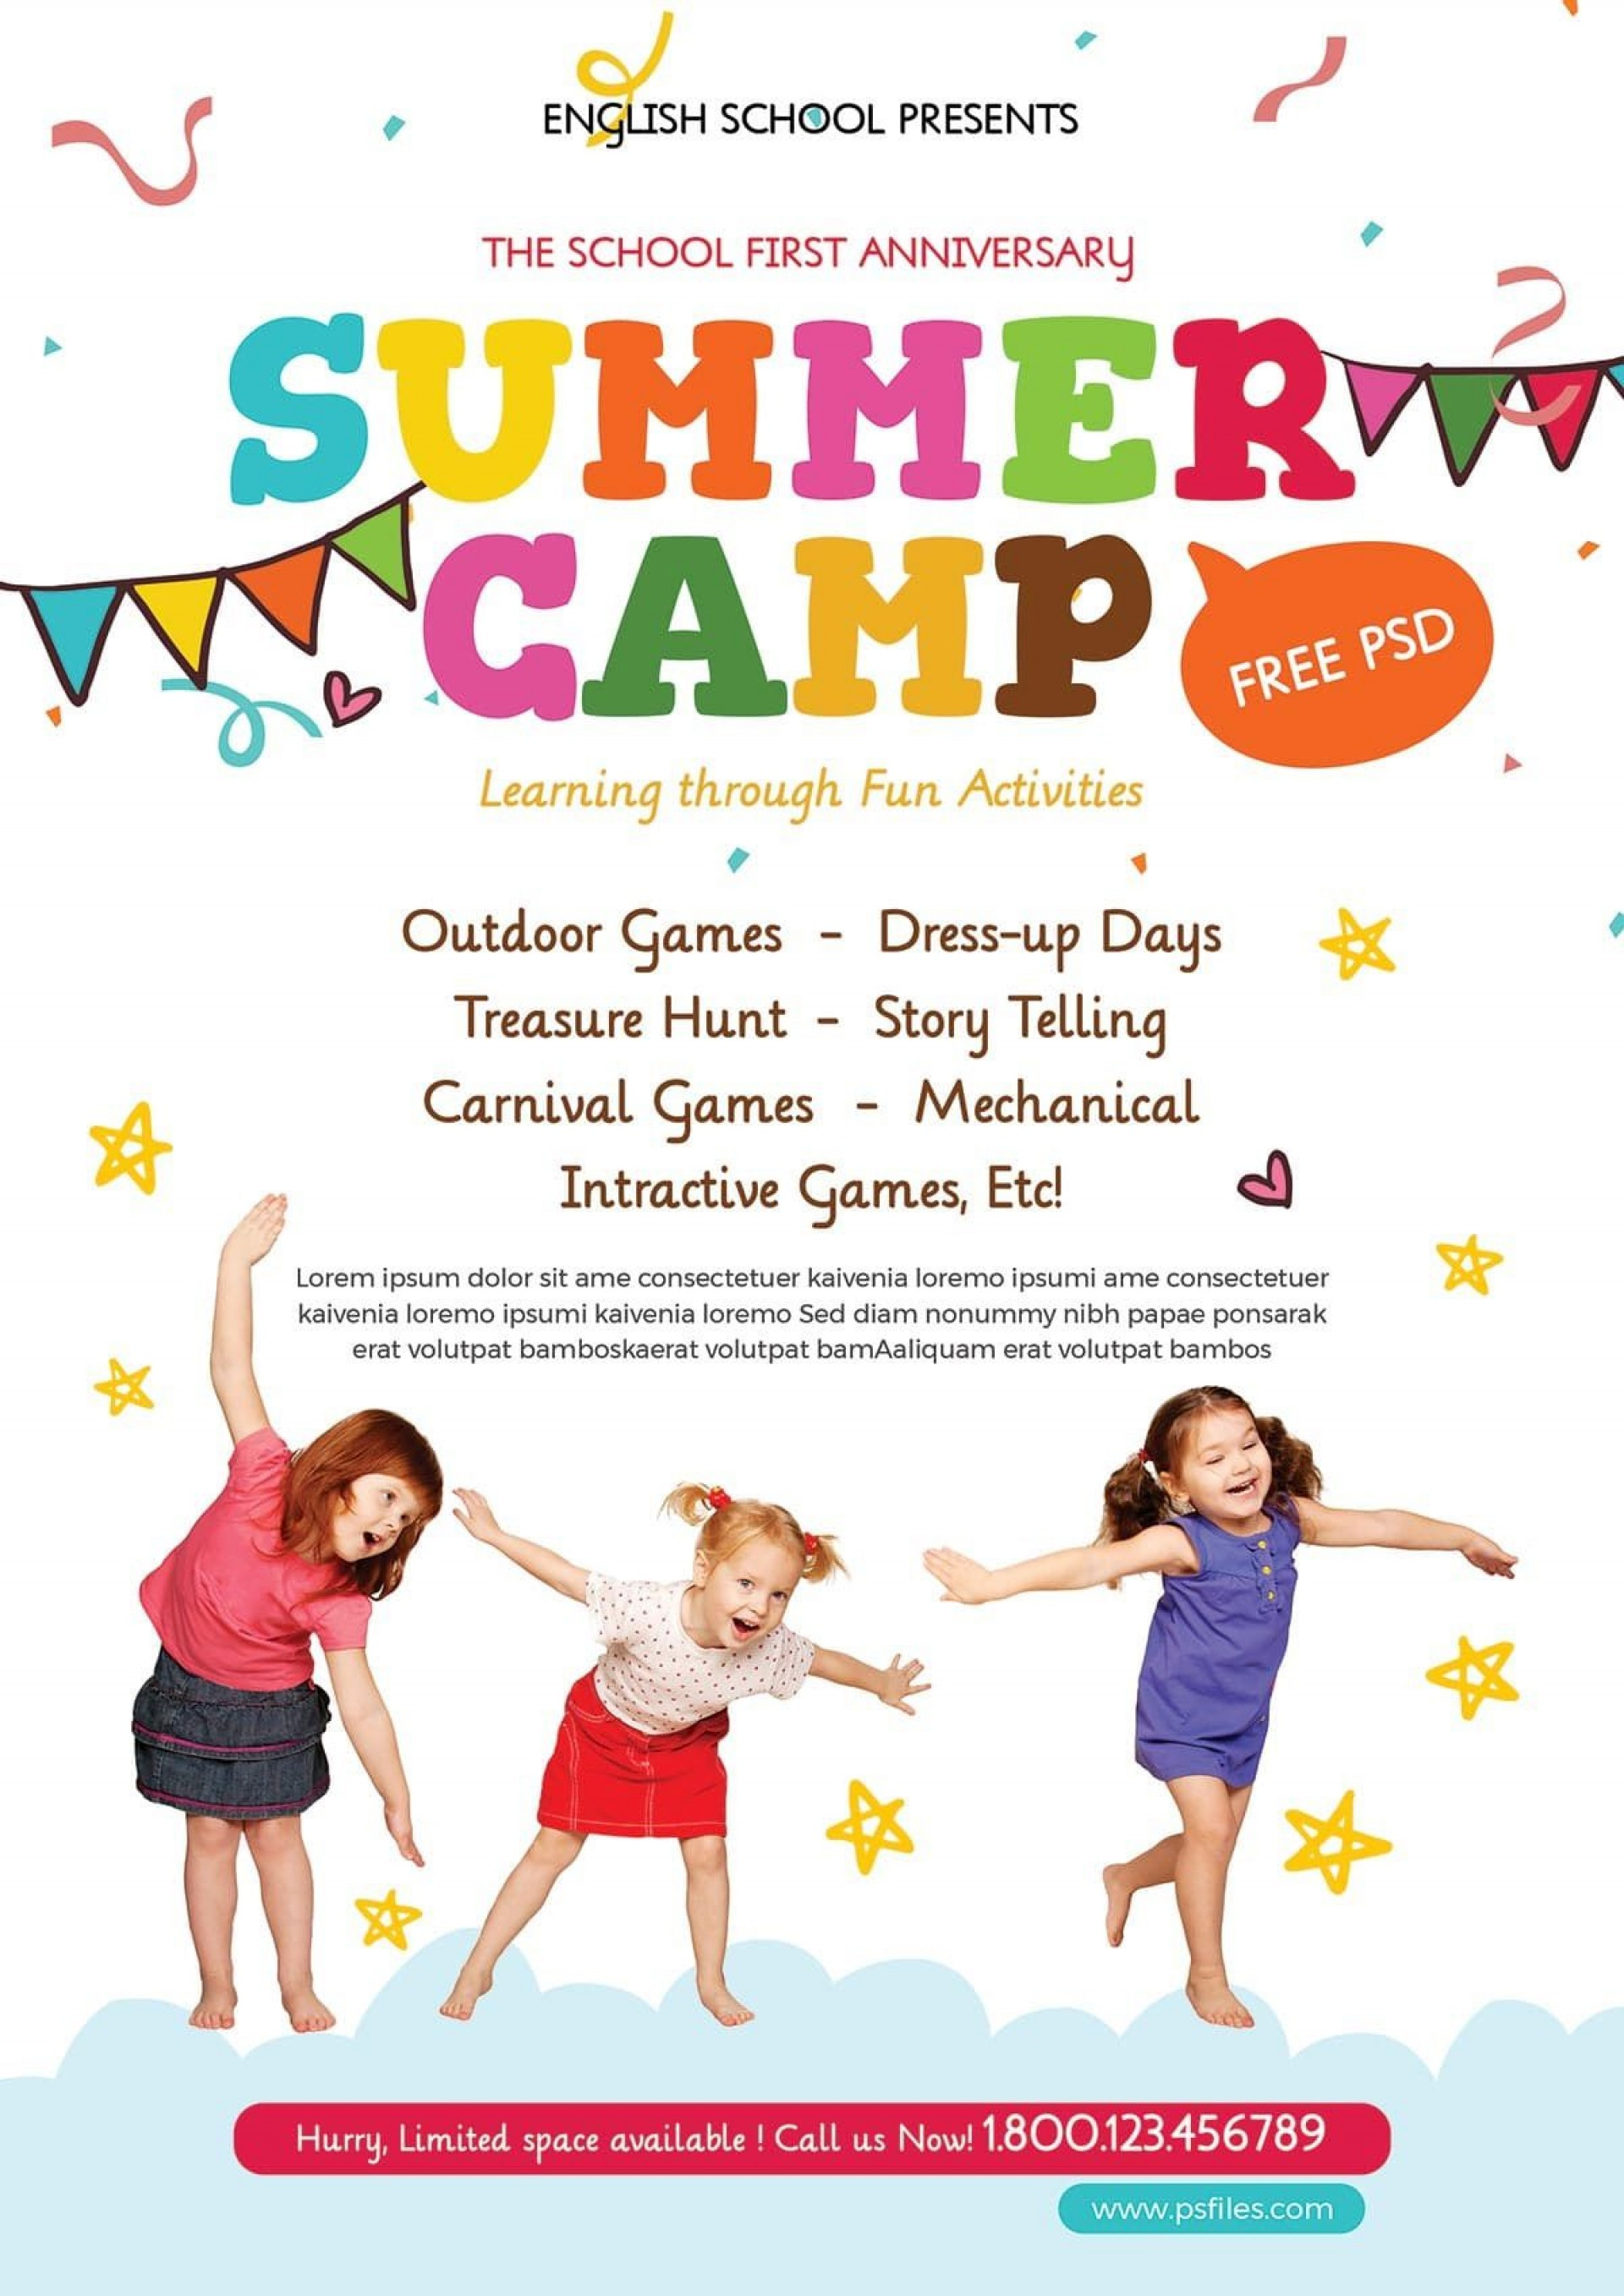 004 Awful Summer Camp Flyer Template Image  Day Microsoft Word Background1920